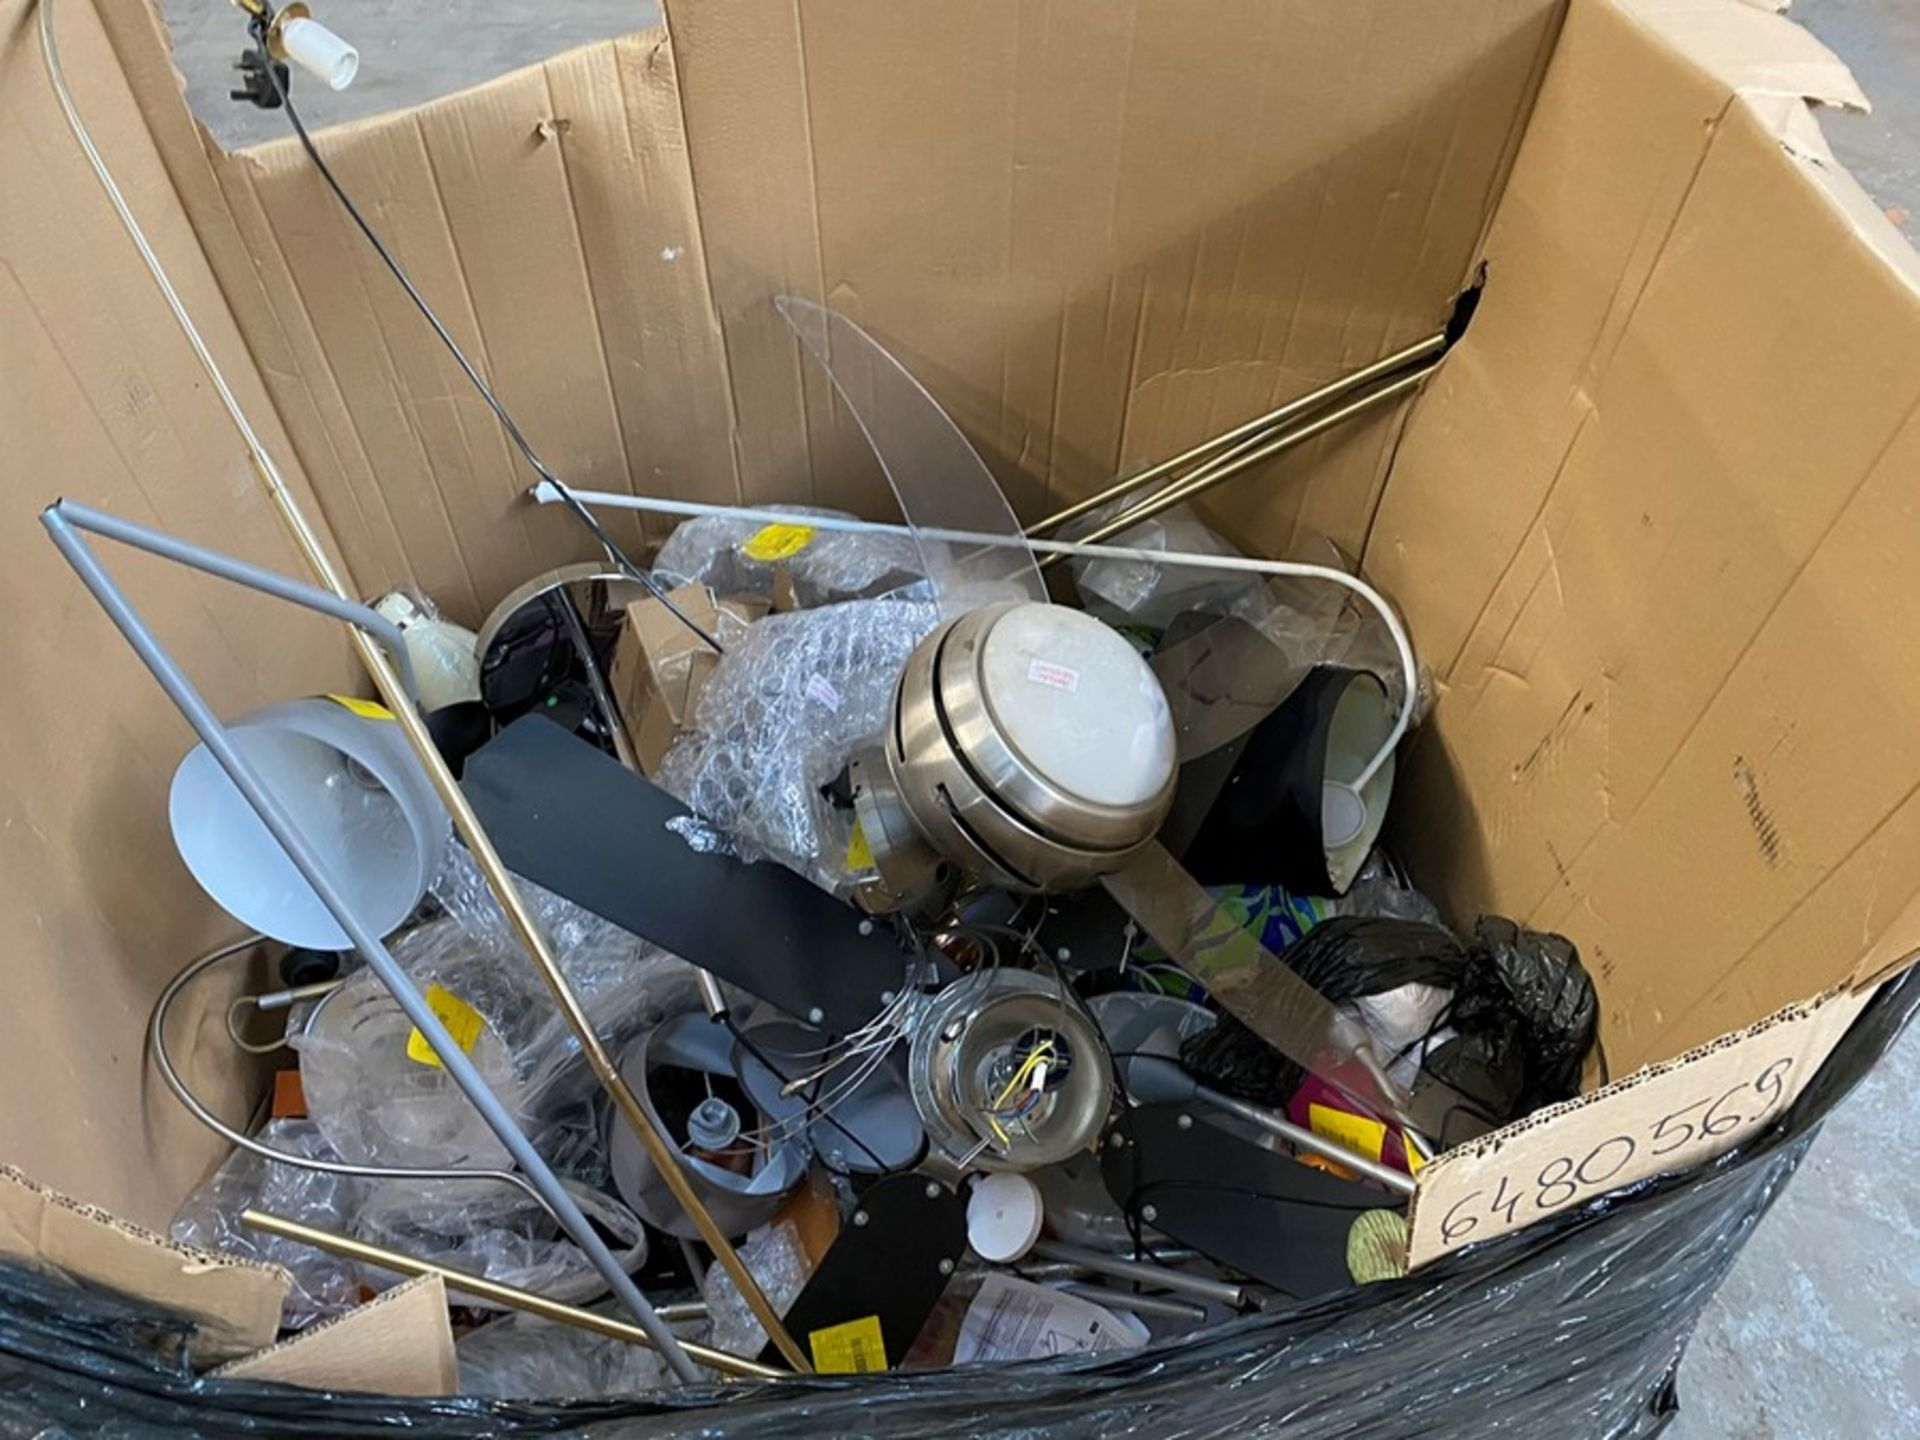 Lot 16 - 1 LOT TO CONTAIN ASSORTED UNTESTED LIGHTS, LAMPS AND LAMPSHADES (PUBLIC VIEWING AVAILABLE)